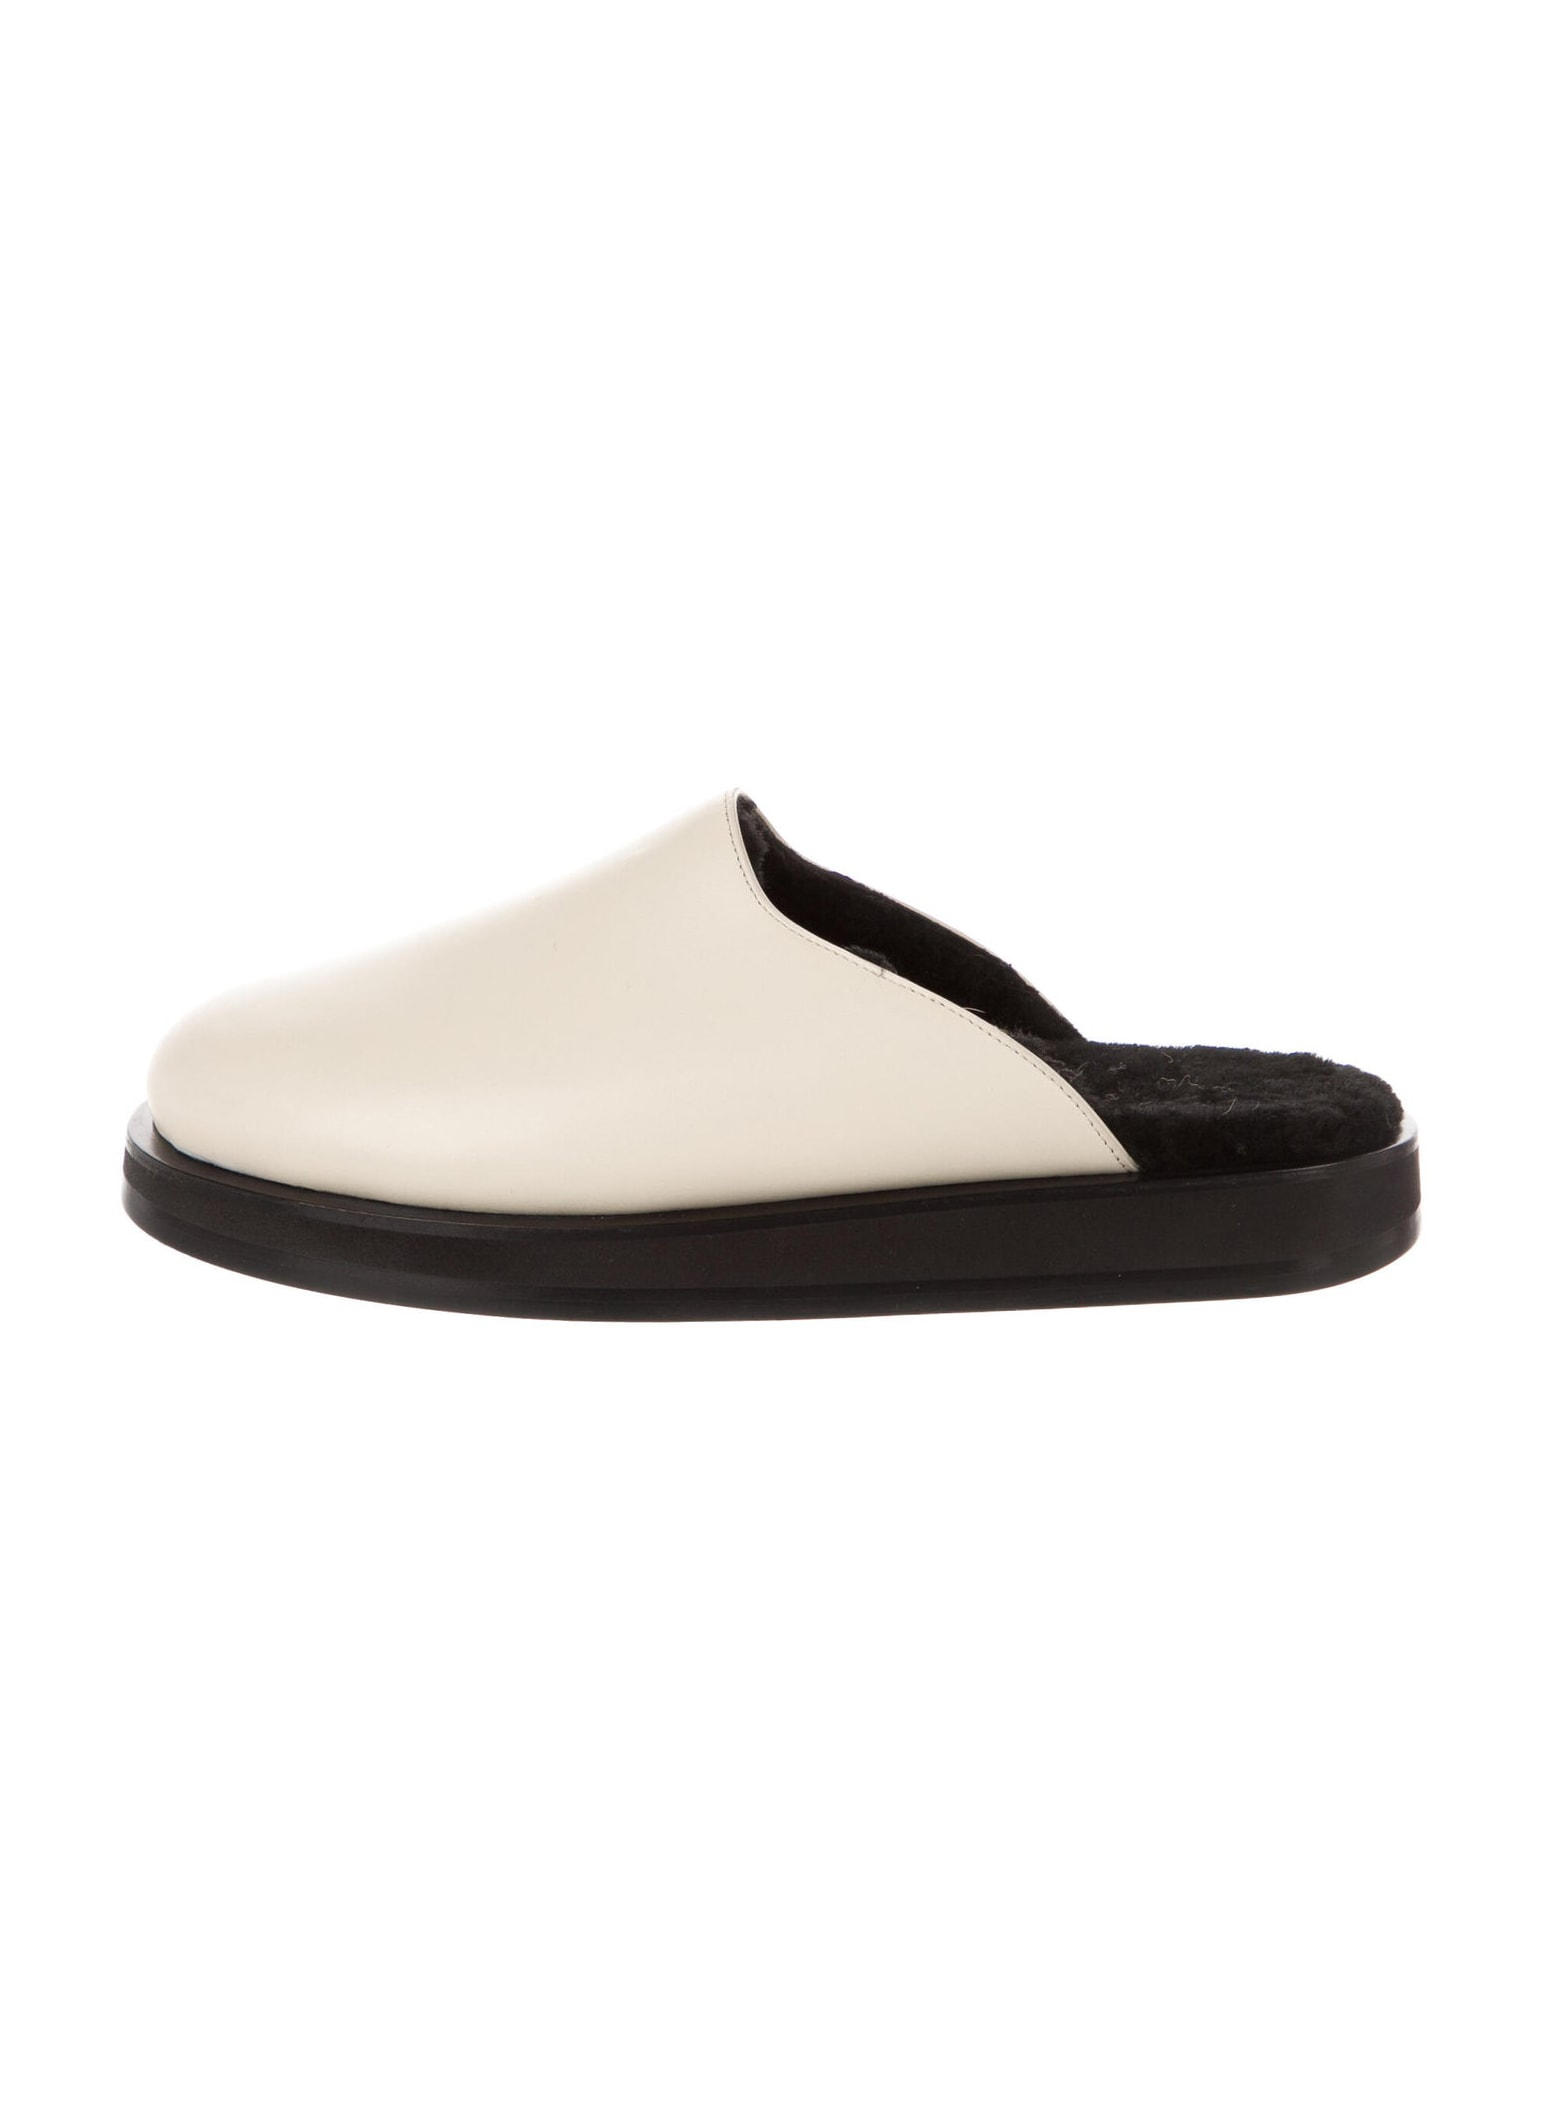 THE ROW Calfskin Mules w: Tags